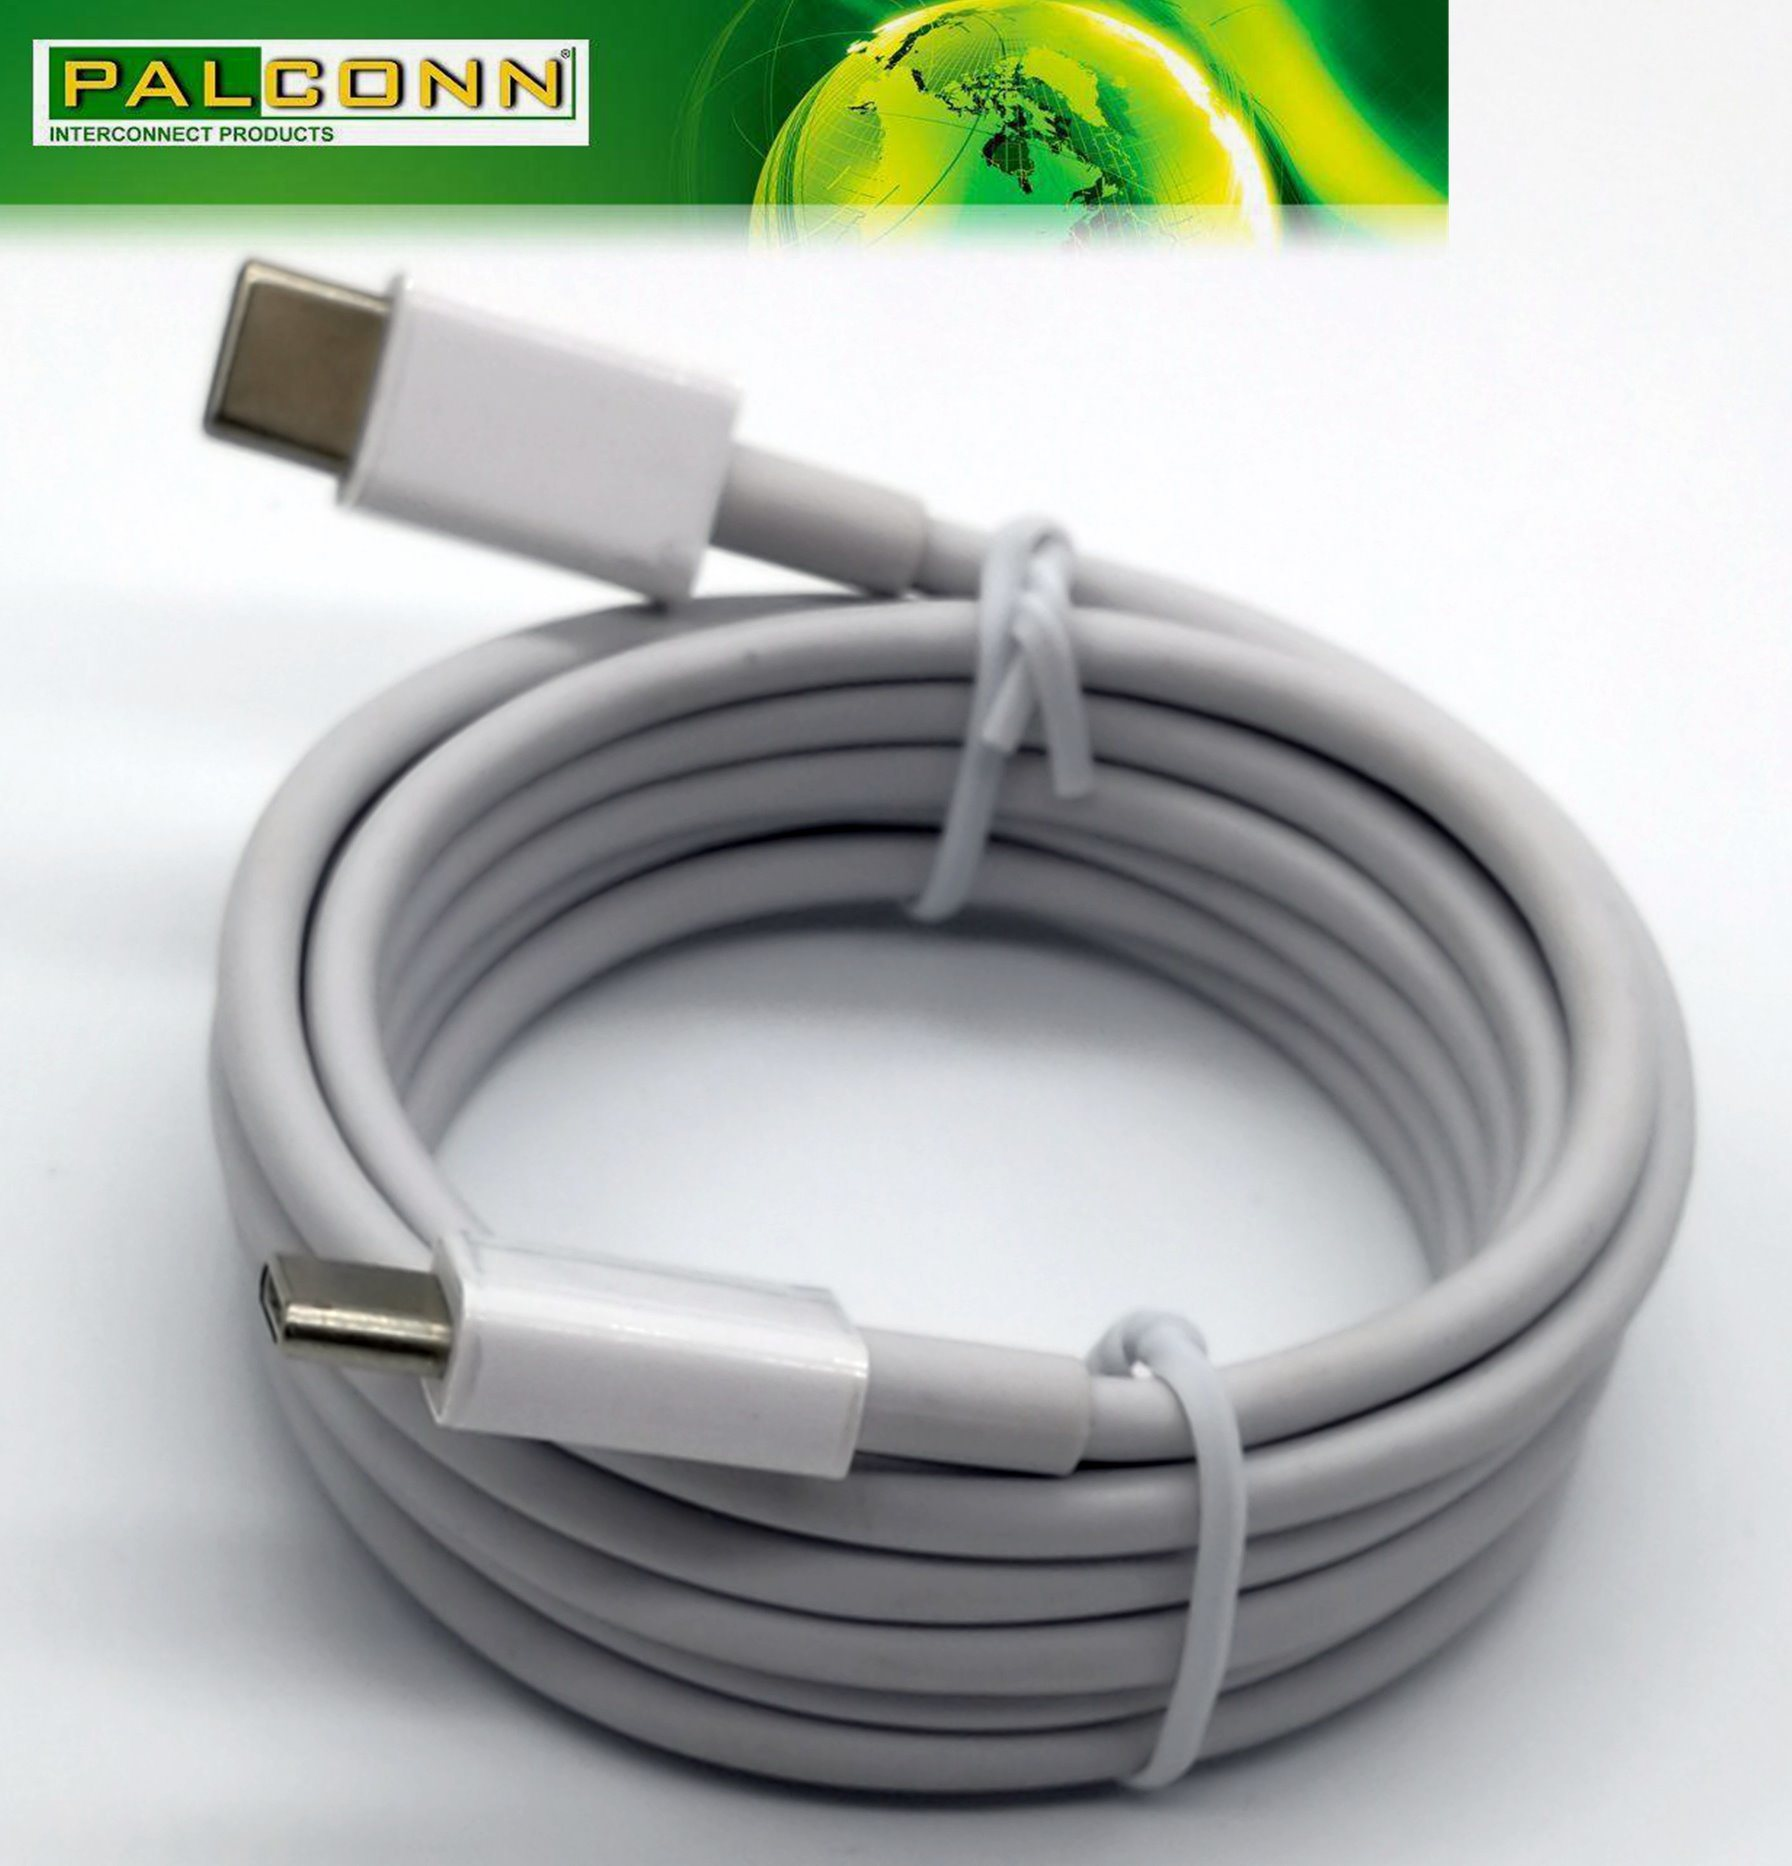 USB2.0 Type C Cable, L=1800mm, E-MARK, Meet Current~5A, for Type C Pd Power Adapter, RoHS Compliant. 23AWG UL, TPE